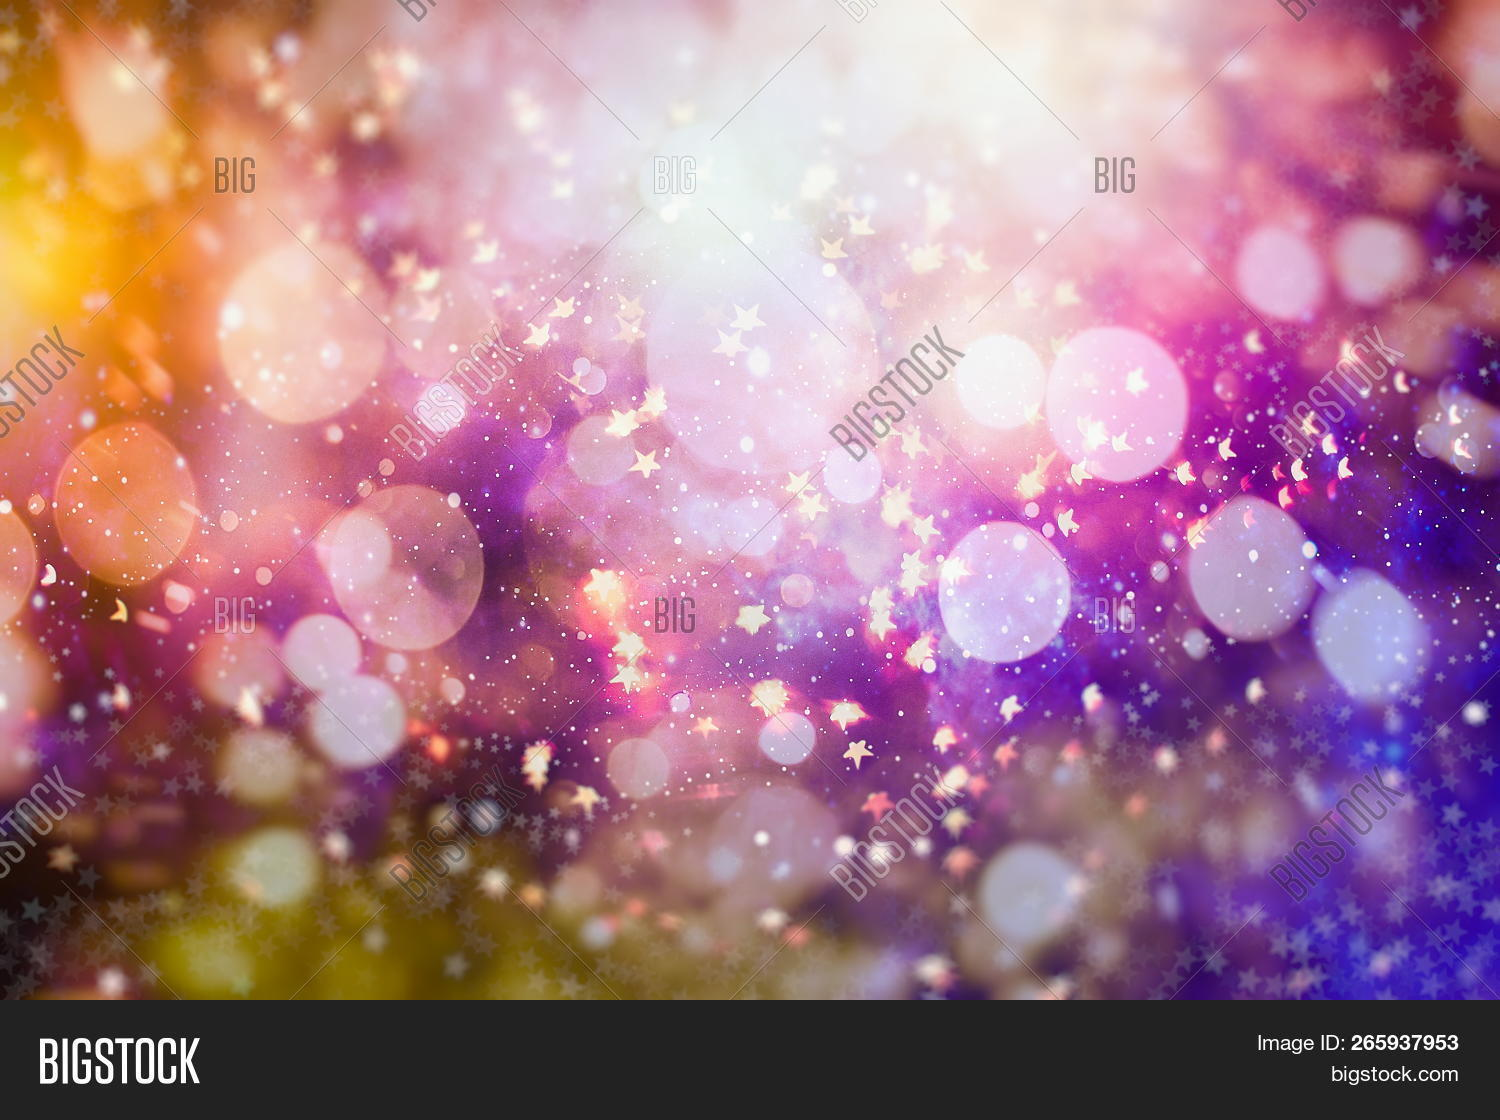 Christmas,abstract,autumn,autumnal,background,blur,blurred,blurry,boke,bokeh,christmas,cosmic,defocus,defocused,disco,effect,fall,filter,glimmer,glitter,glittering,glittery,glitz,glow,gold,golden,halloween,light,magic,orange,sands,shimmer,shine,shiny,spark,sparkle,sparkly,texture,wallpaper,yellow